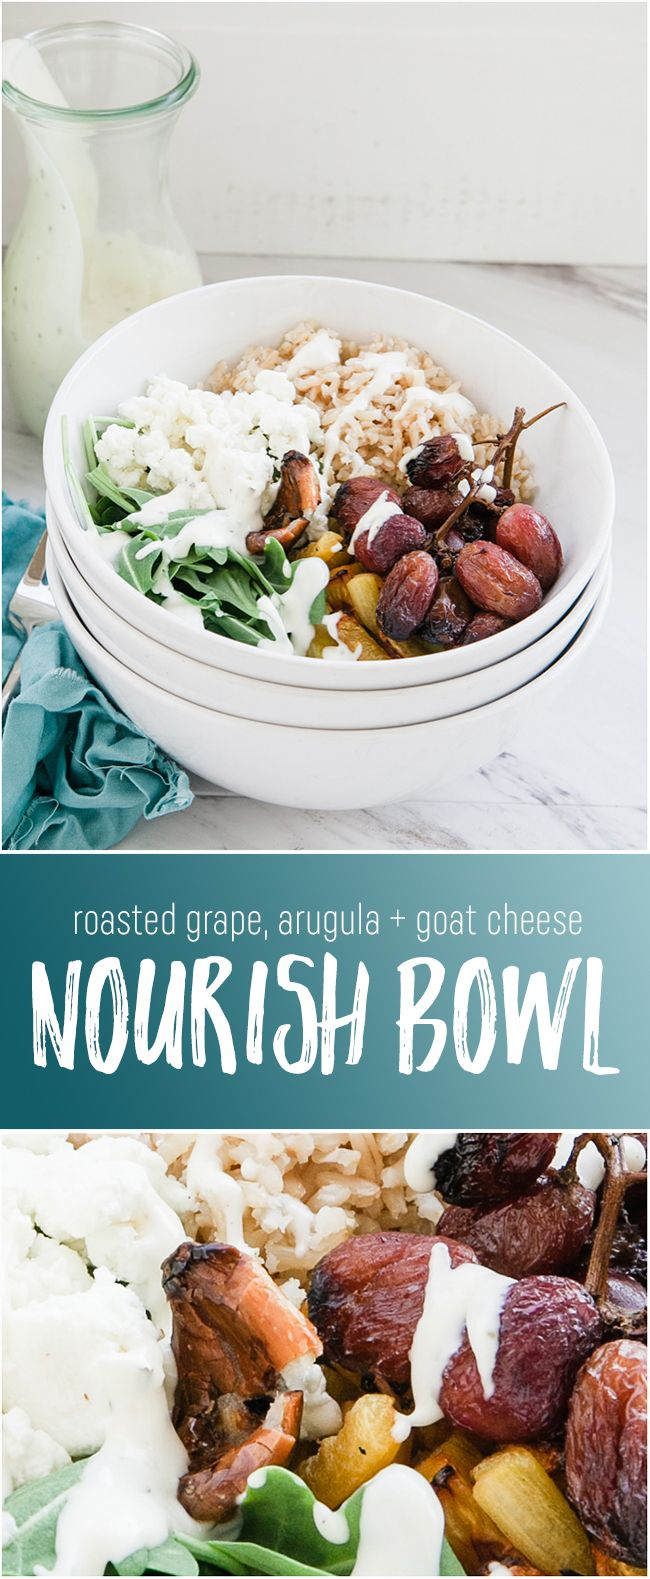 Roasted Grape, Arugula and Goat Cheese Nourish Bowl - A delicious and healthy bowl with creamy dressing looks as good as it tastes. This healthy Buddha bowl is a great clean eating lunch or dinner!